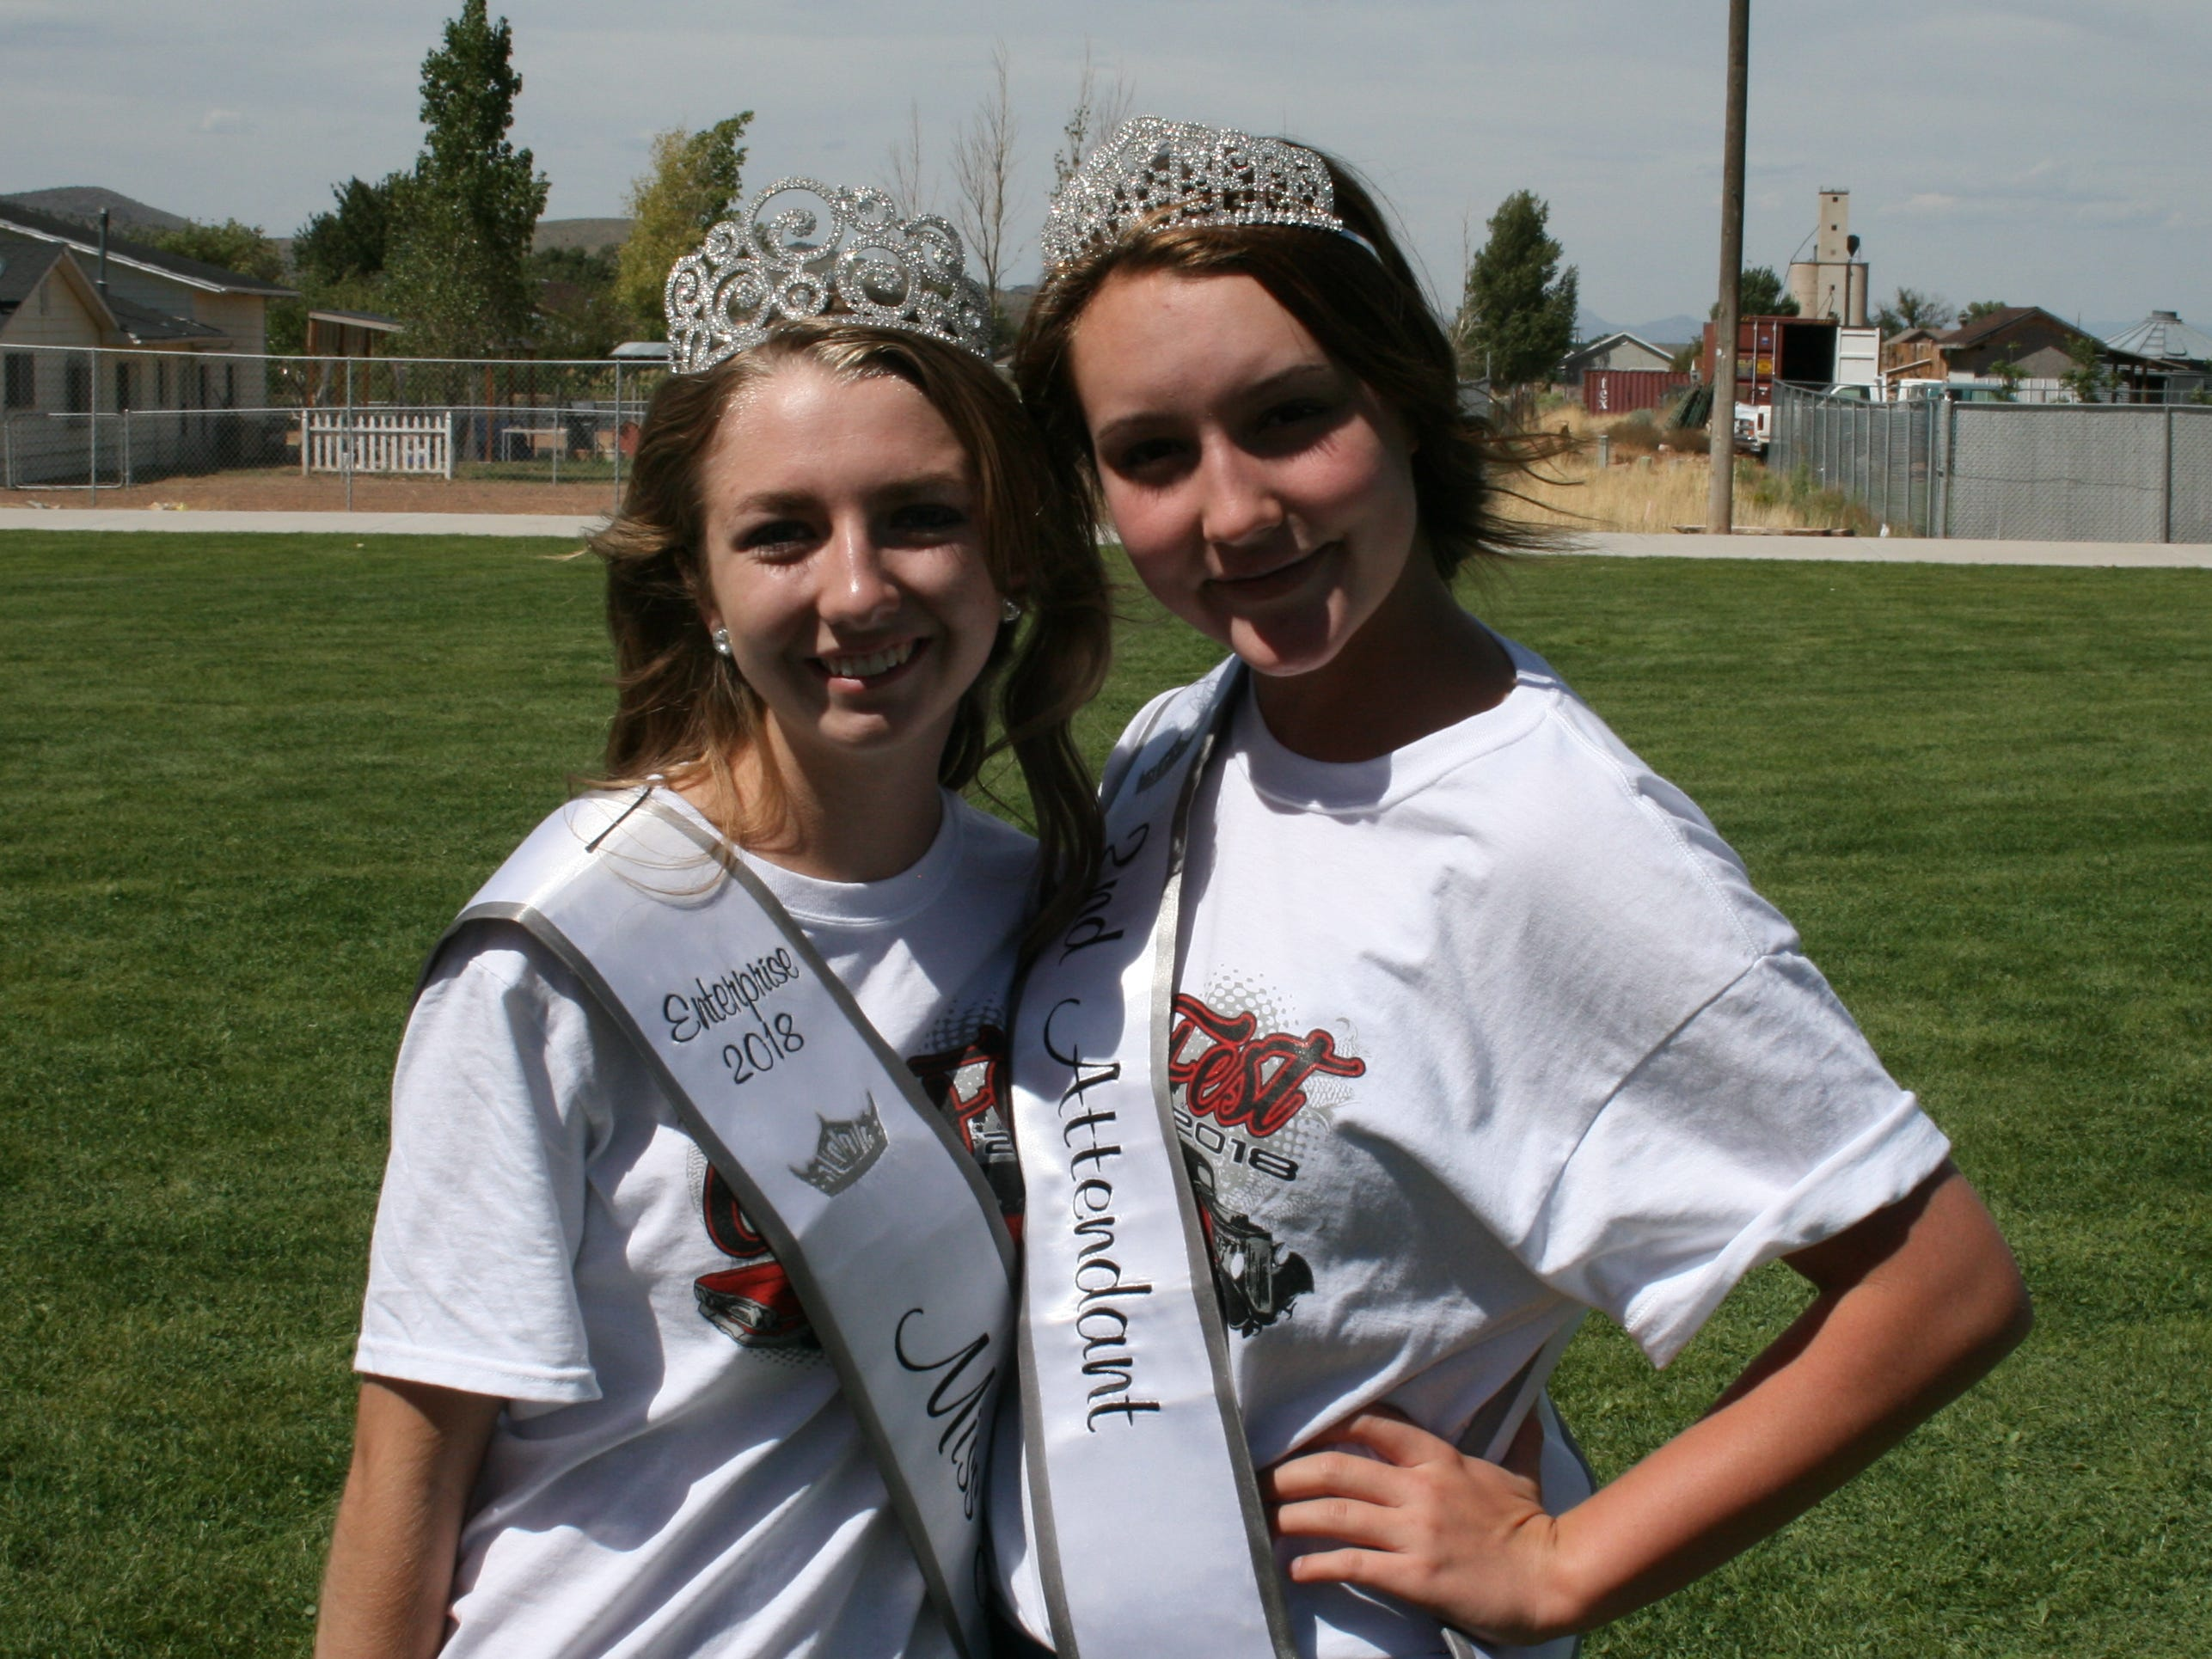 Miss Enterprise 2018 Taysha Pedersen, left, and 2nd Attendant Dallee Cobb worked the information table at Cornfest on Aug. 25, 2018.